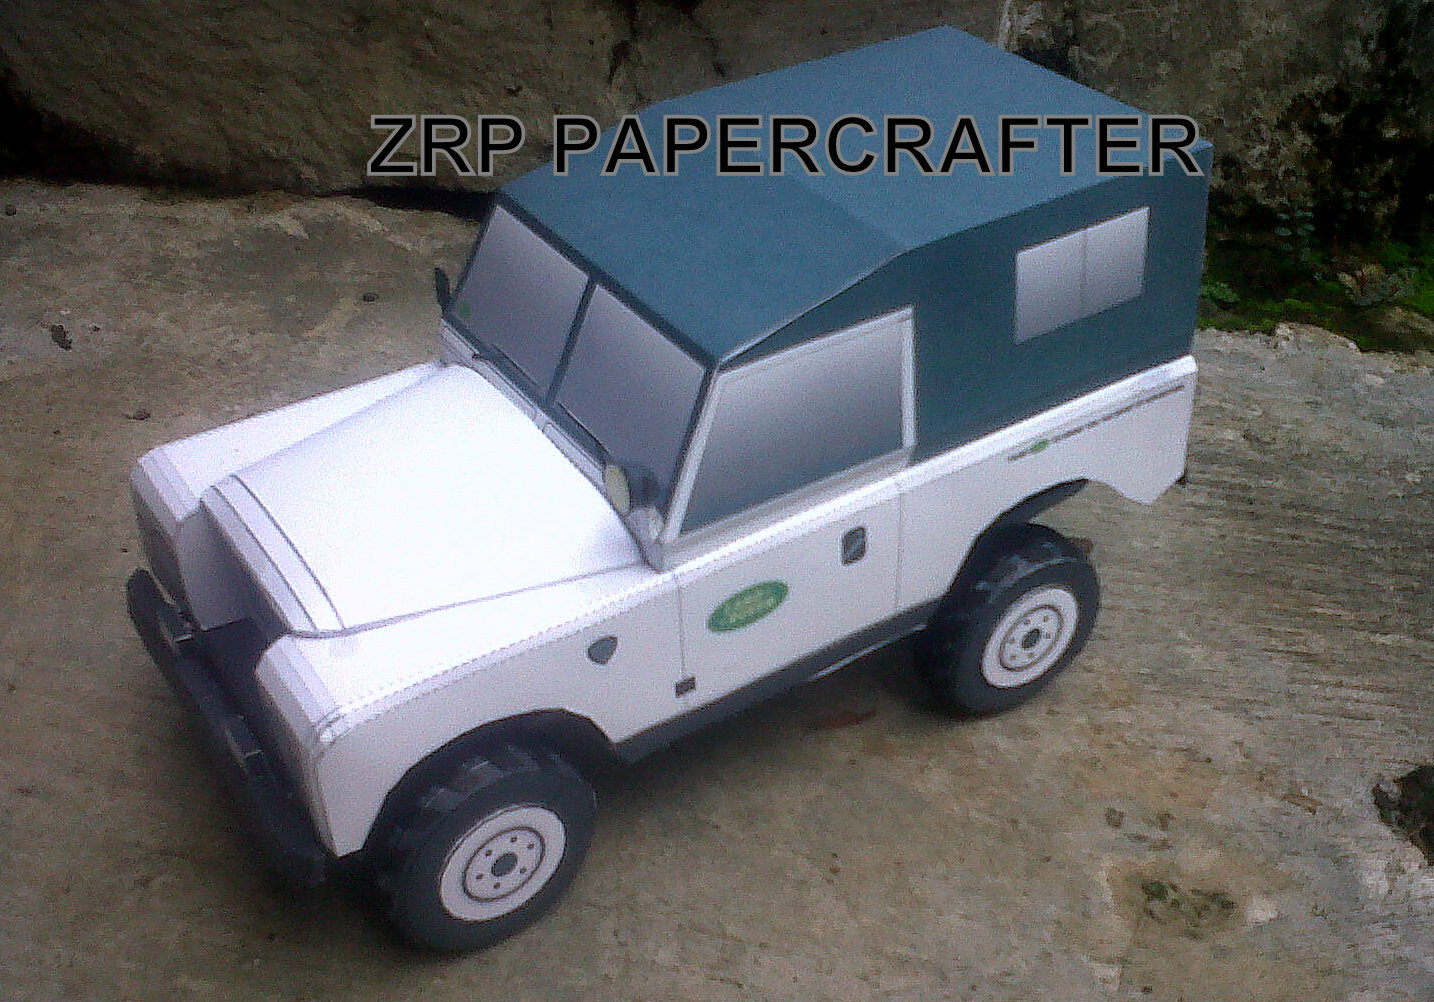 1979 Land Rover Series III Papercraft